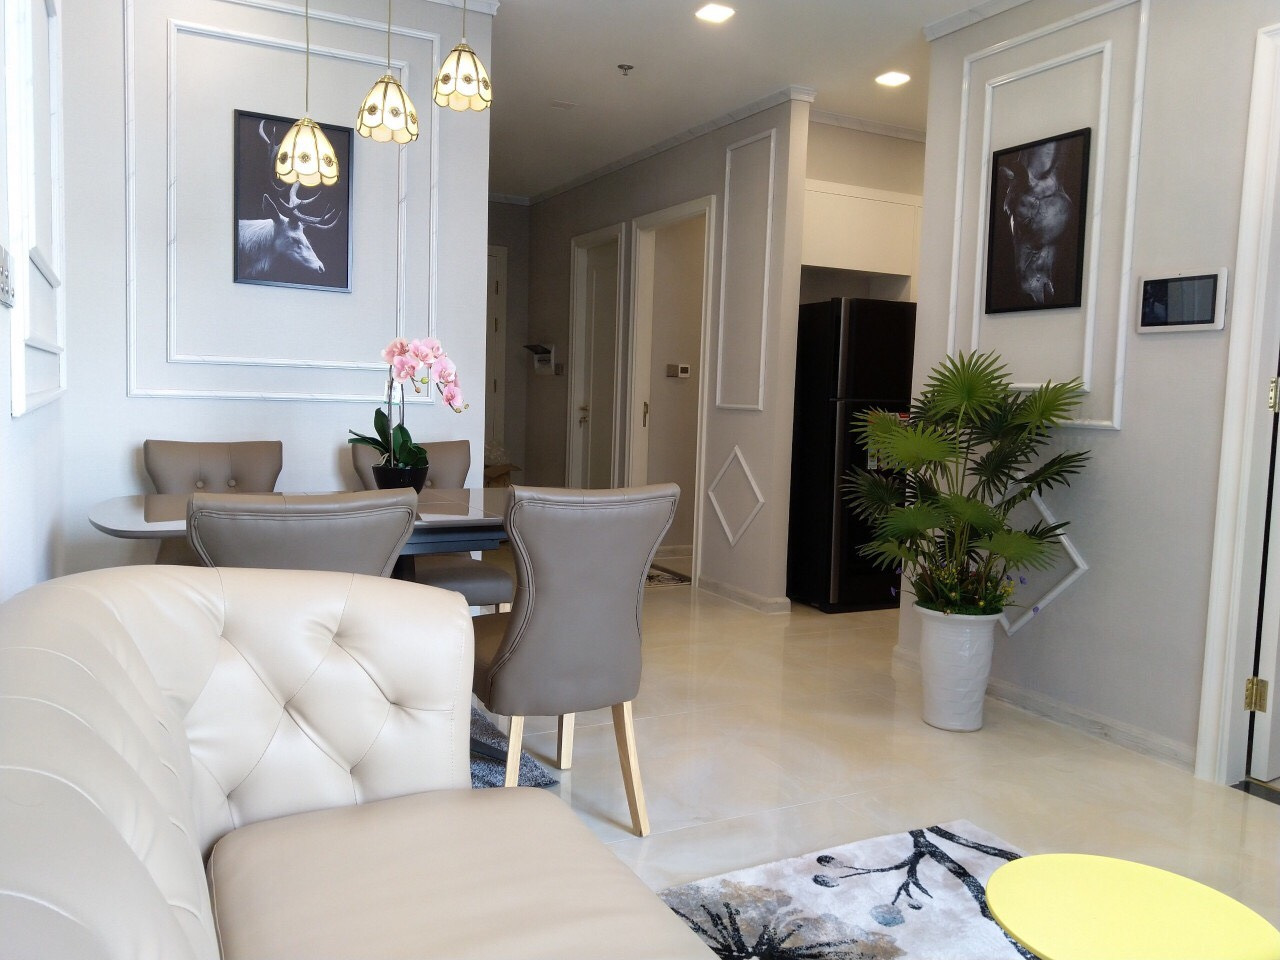 vinhomes golden river apartment for rent in district 1 hcmc D1021122 (11)